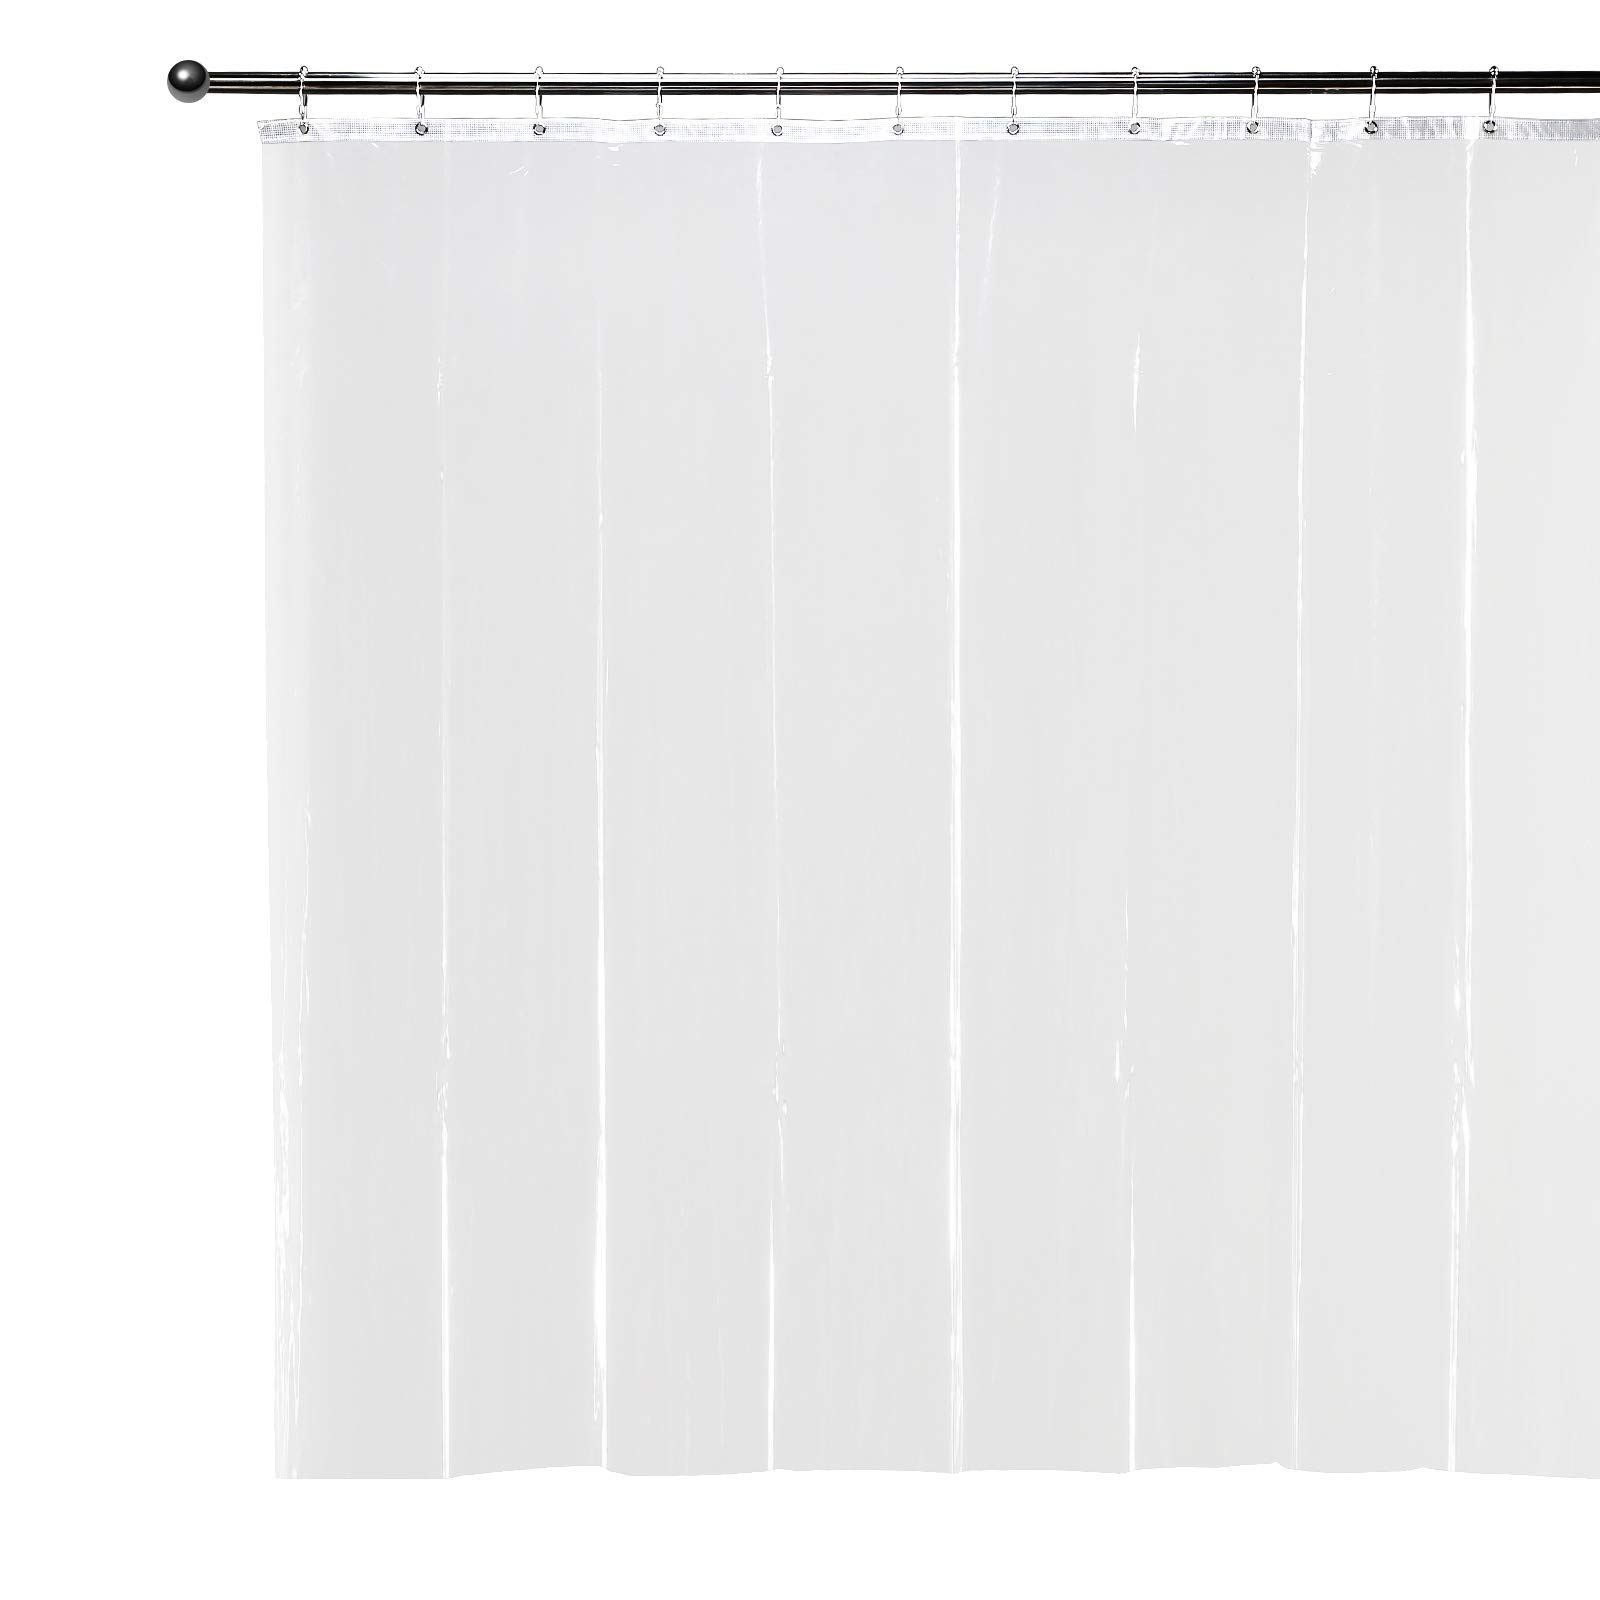 Shower Curtain Liner Clear with 12 Hooks Mold Mildew Resistant Antibacterial with Rustproof Grommets, Eco Friendly Odorless Non Toxic Waterproof Quick Dry Bathroom Curtains Moonen 72x72 Inches